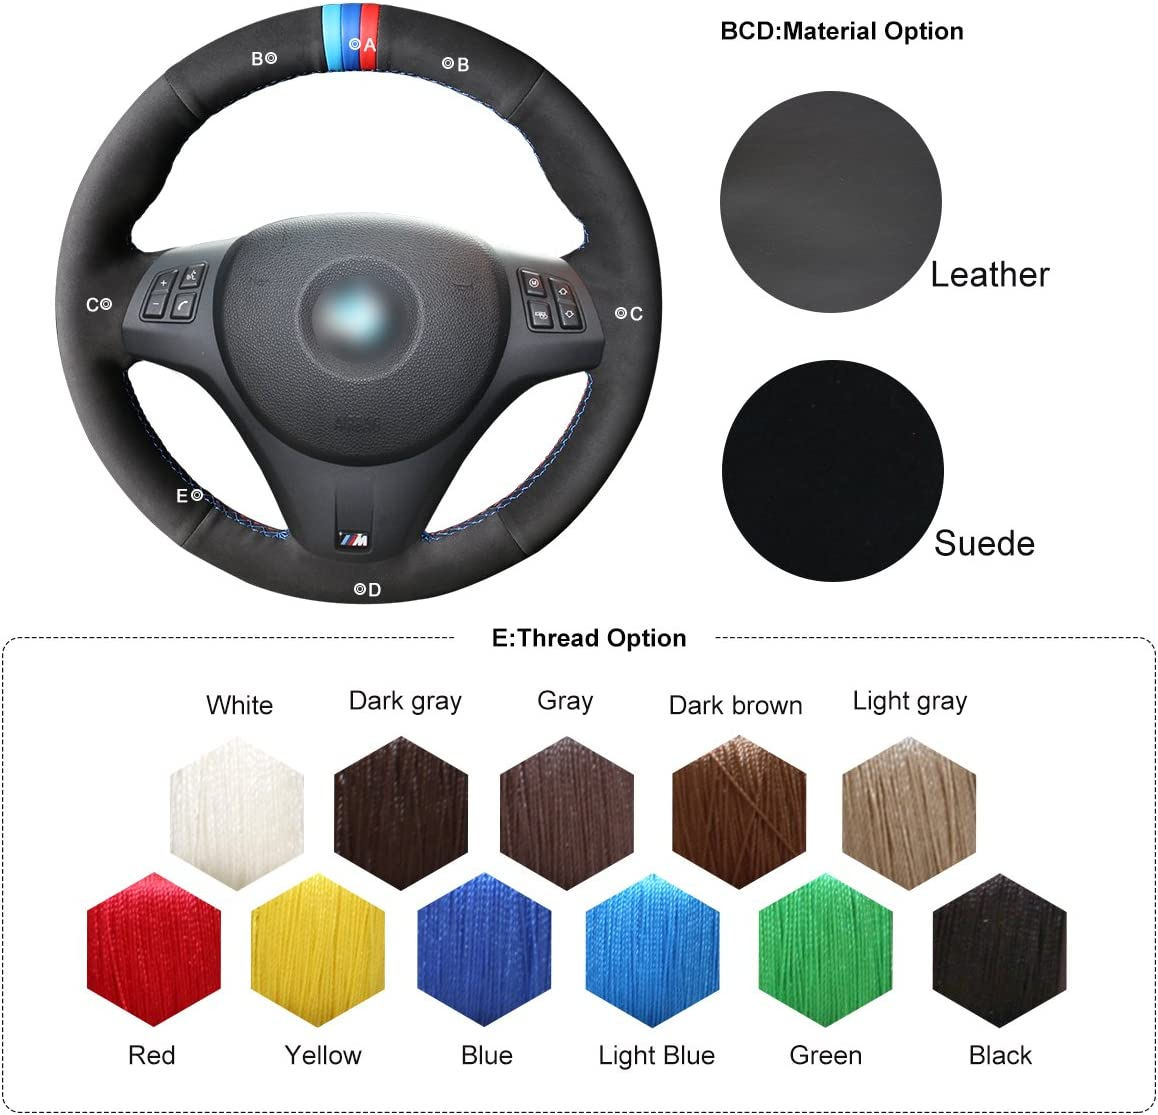 MEWANT DIY Customized Hand Stitch Black Real Leather Black Suede Car Steering Wheel Cover for BMW 1 Series E81 E82 E87 E88 2008-2013//3 Series E90 E91 E92 E93 2006-2011 M3 E90 E92 E93 2008-2013